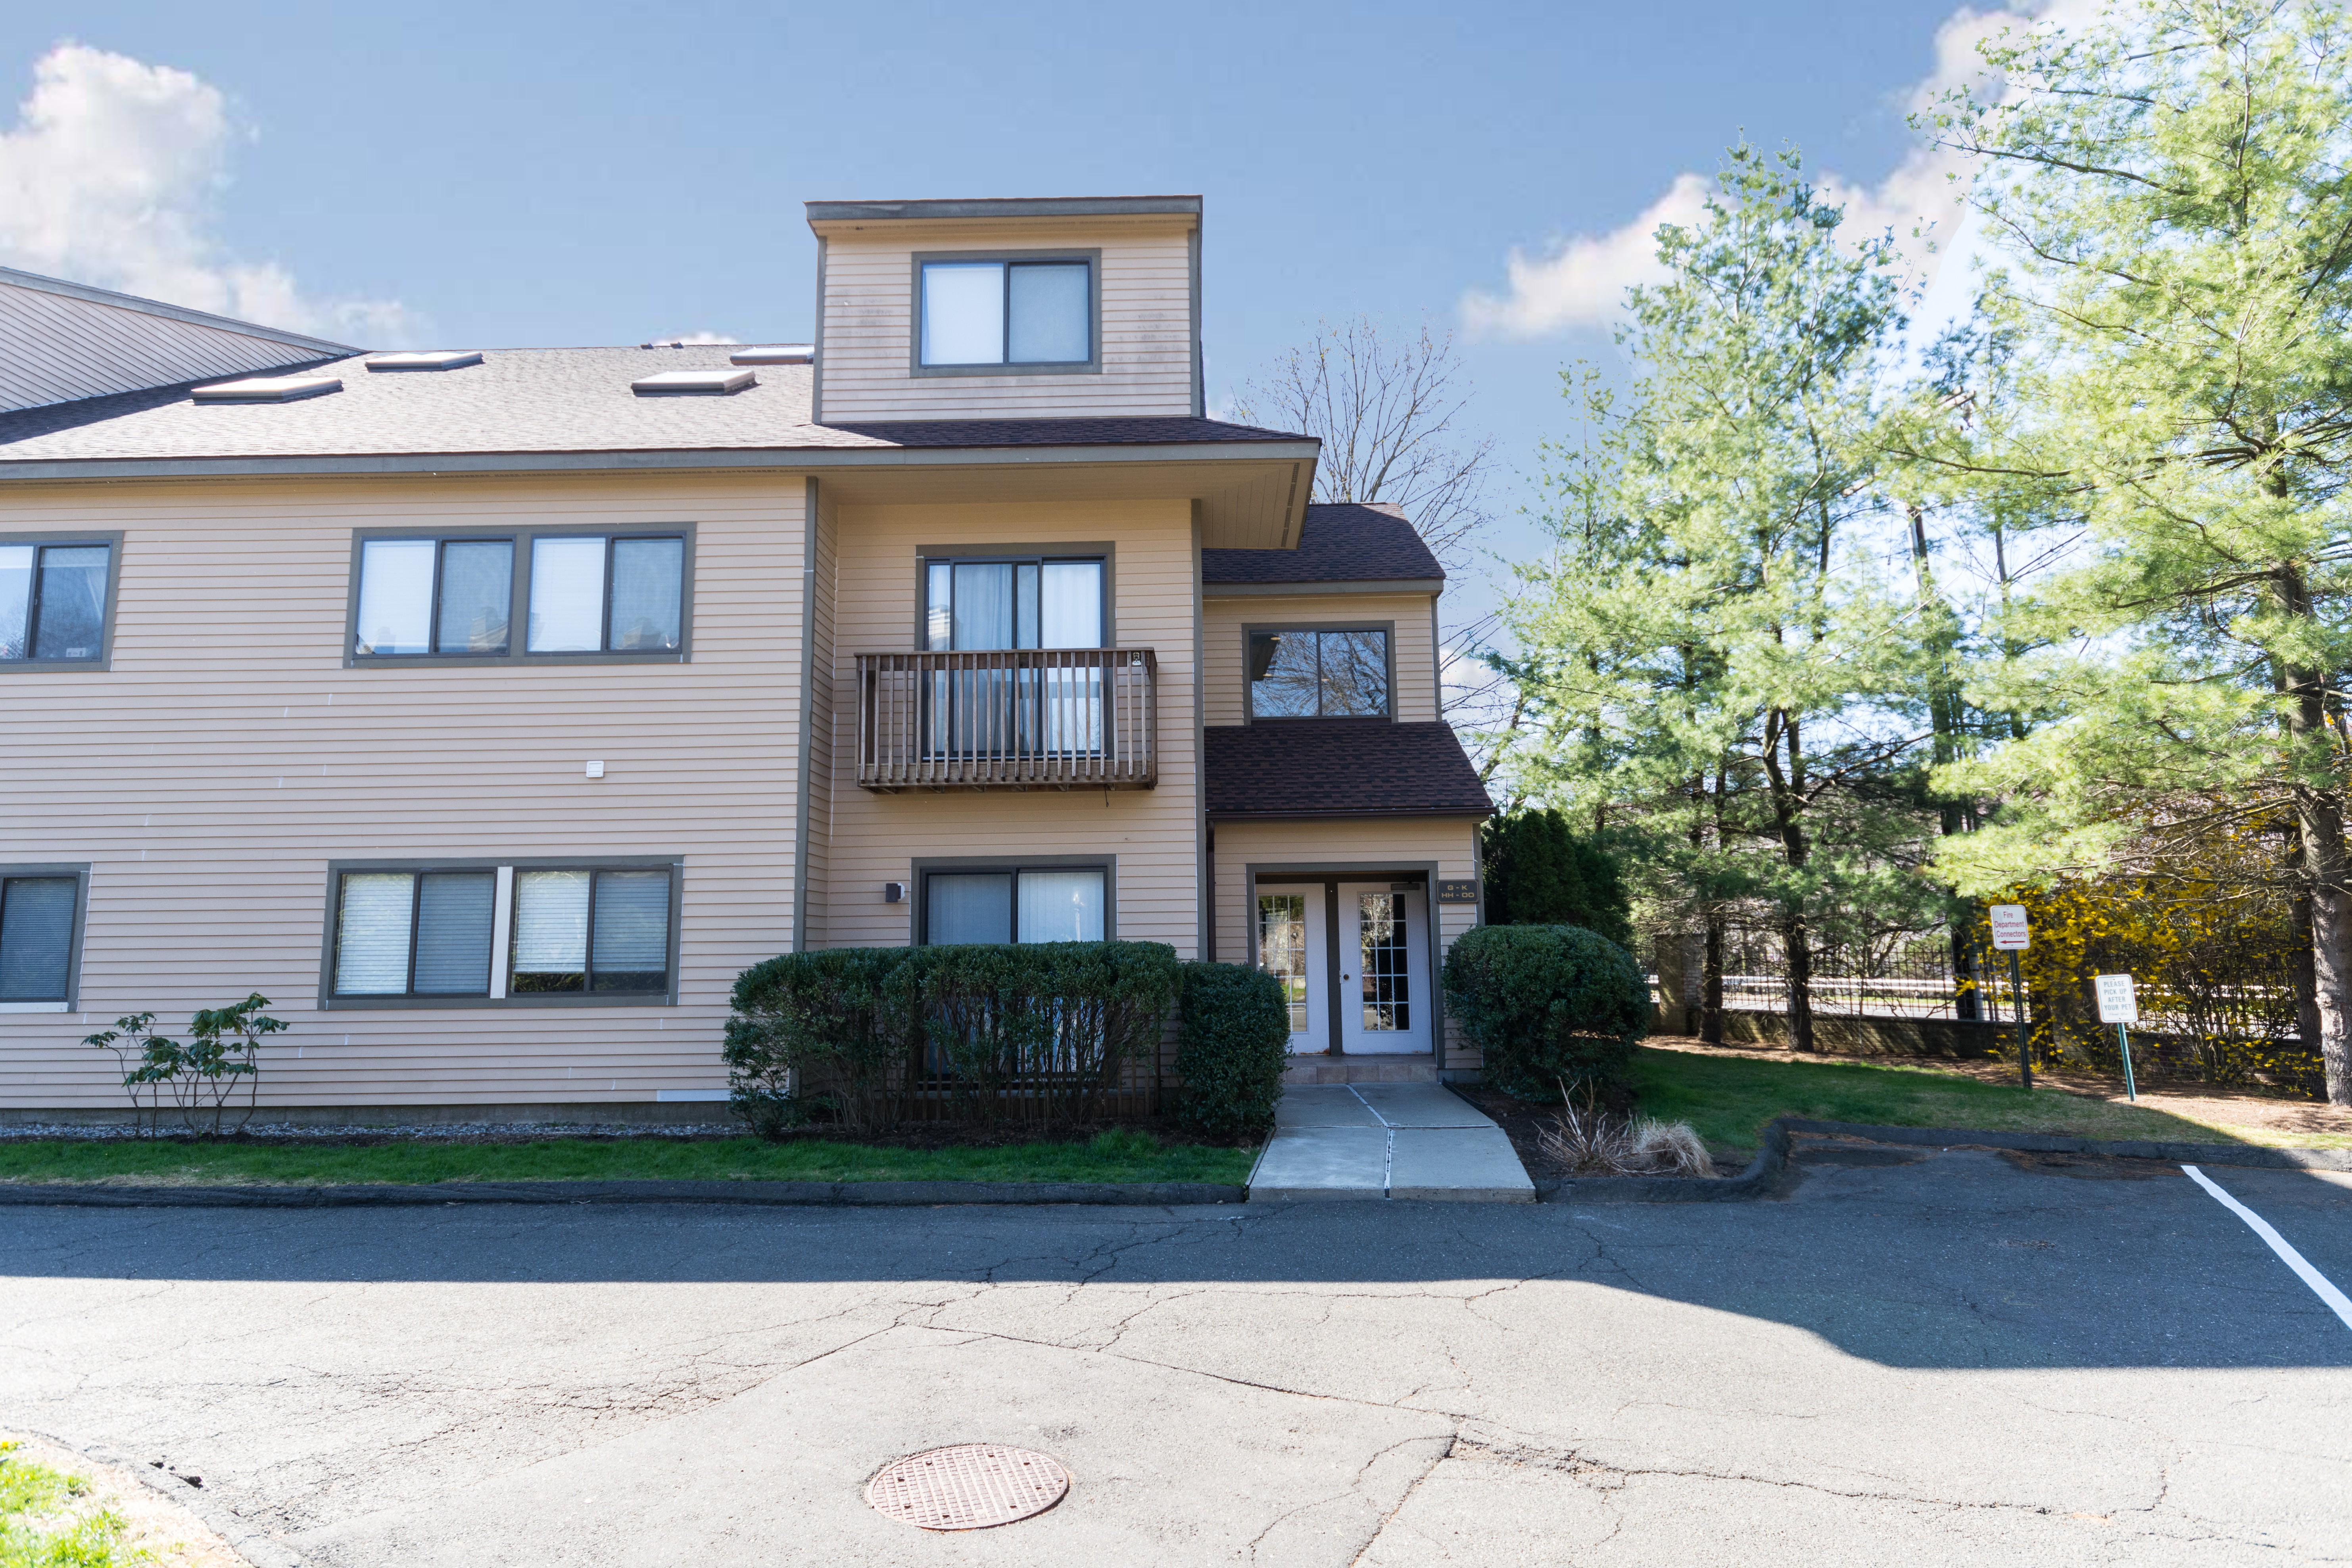 Townhouse for Sale at Chesterfield Townhouse 2435 Bedford Street 21I Stamford, Connecticut, 06905 United States